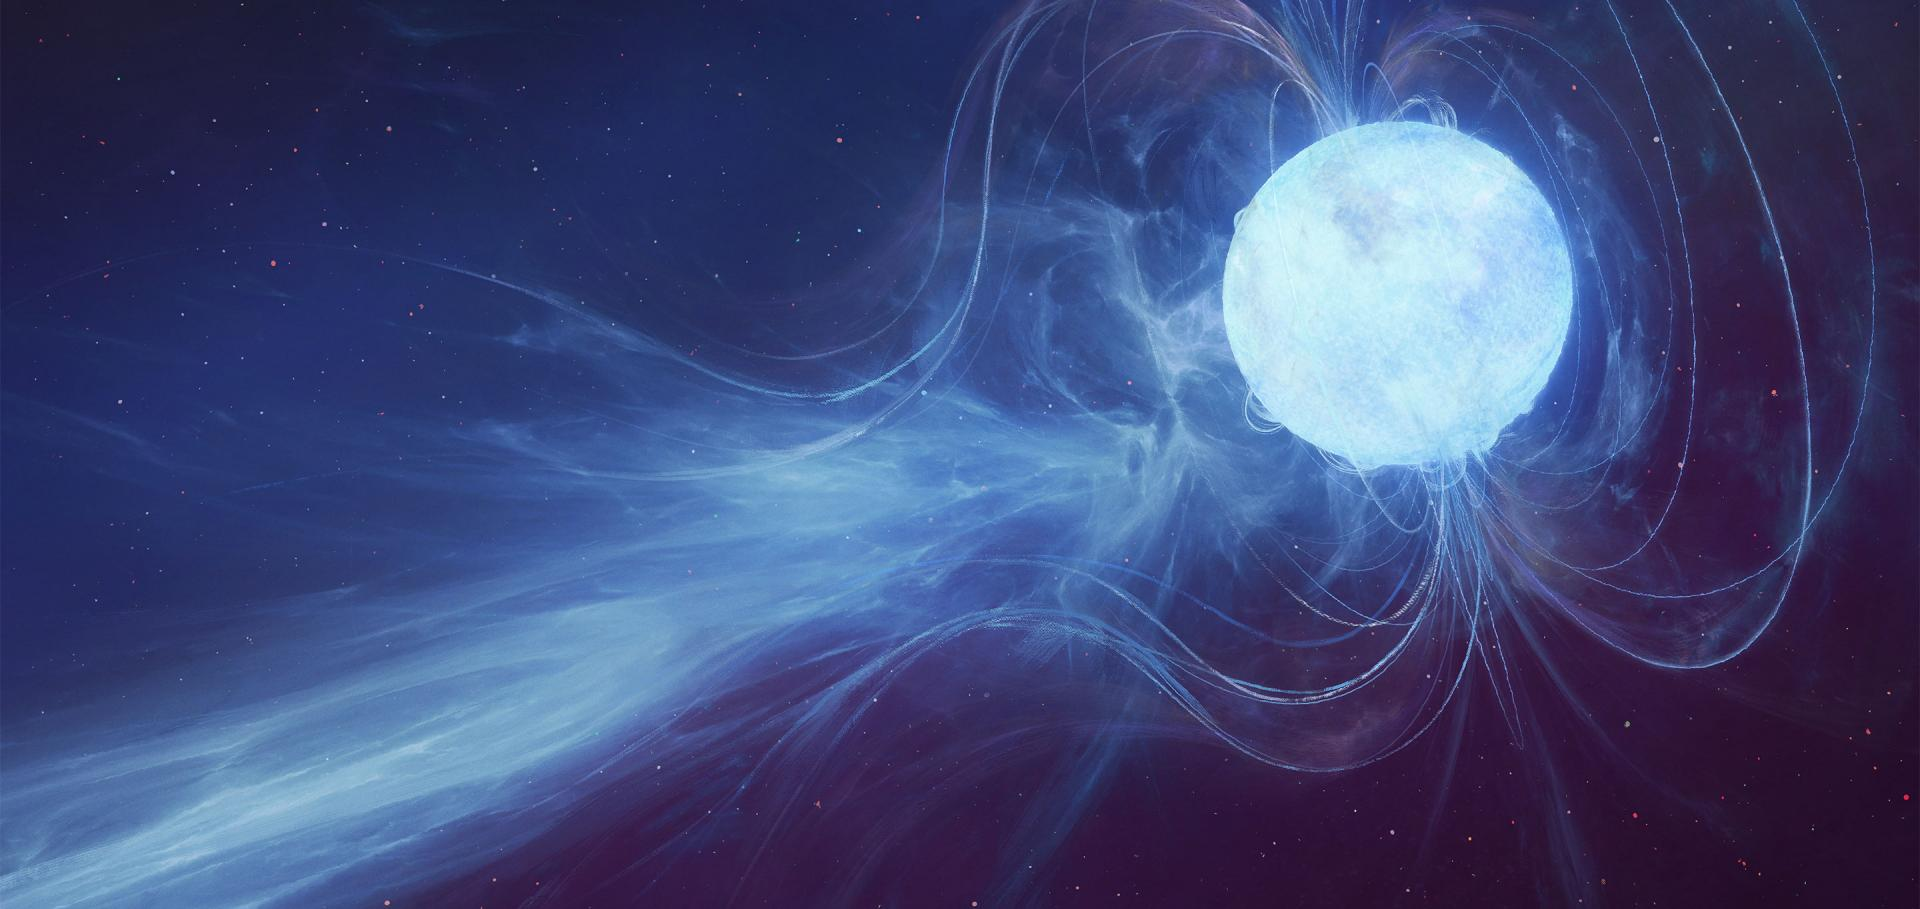 Artist's impression of a Fast Radio Burst coming from a Neutron Star.